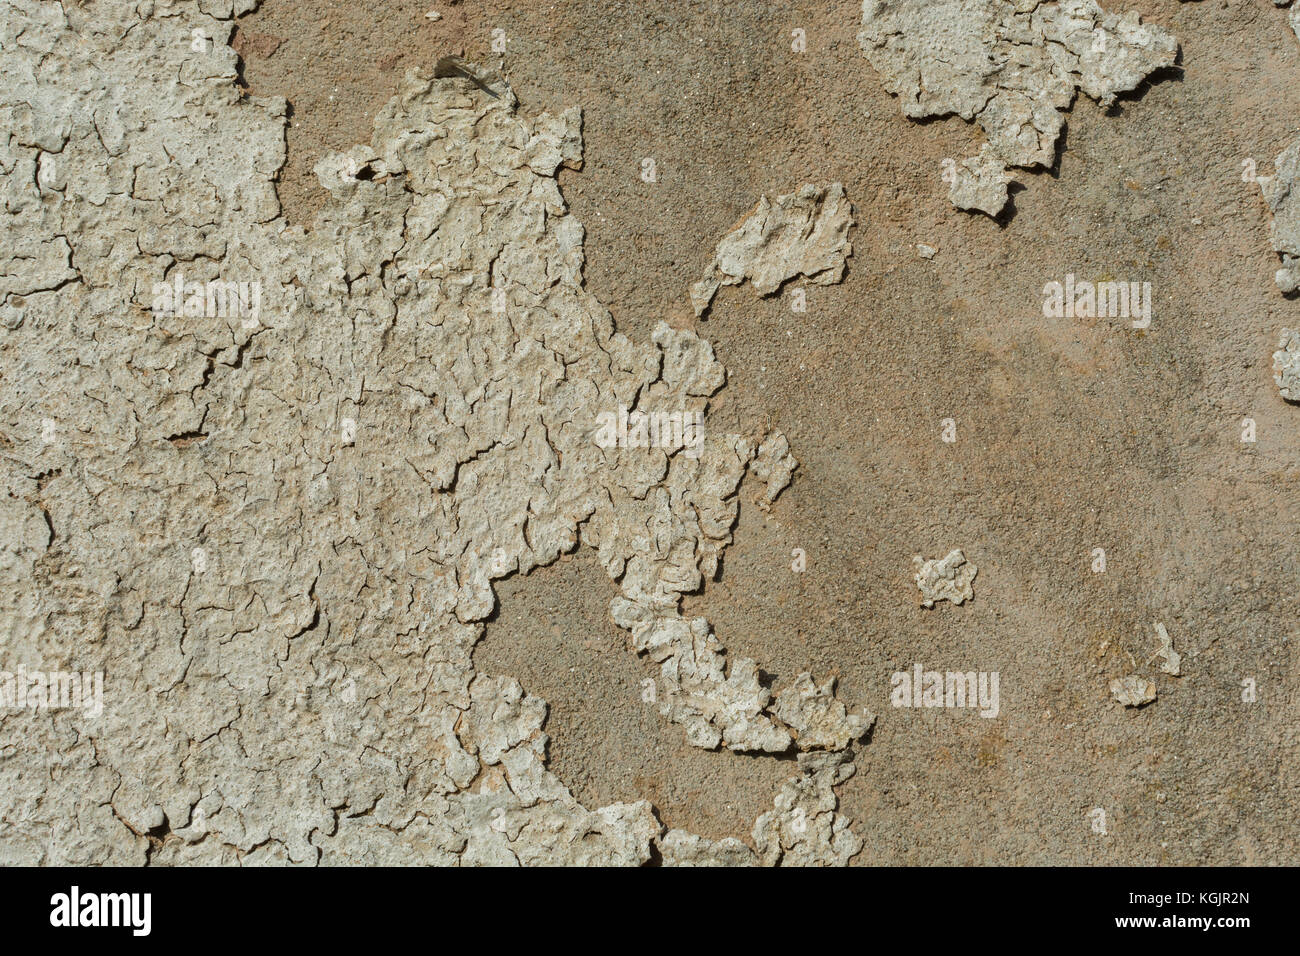 Old exterior wall paint decaying and ing - metaphor for 'seen ... on coarse-textured exterior paint, exterior brick wall paint, texture your walls paint, waterproof exterior paint, exterior concrete wall paint,